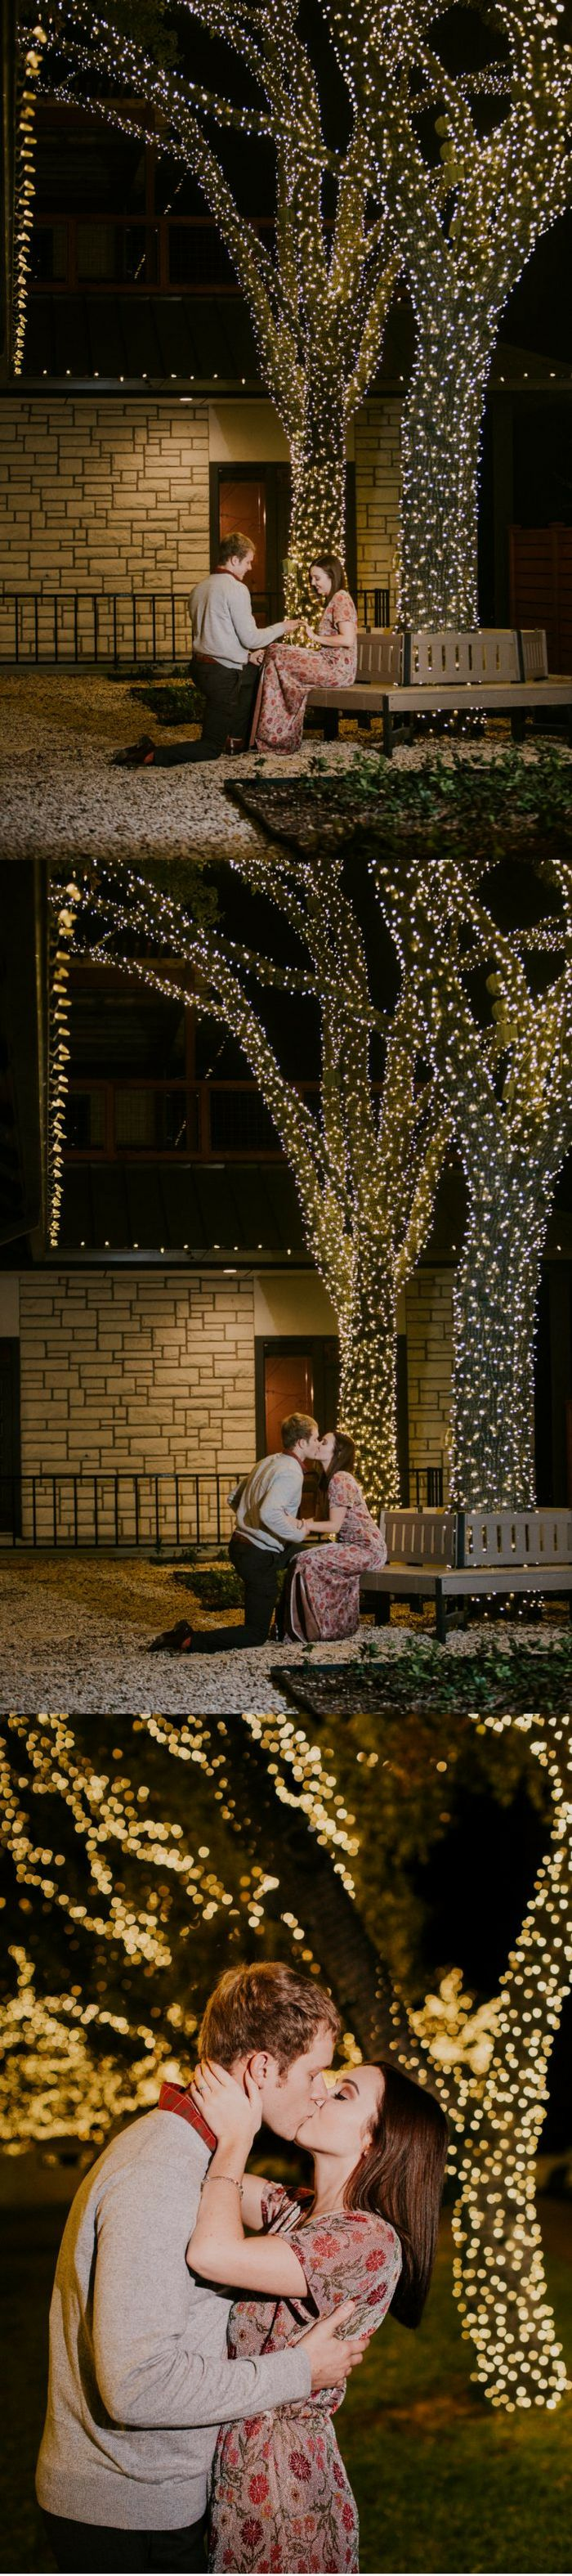 He chose the most perfect park bench to propose under the Christmas lights, and the full story is adorable.